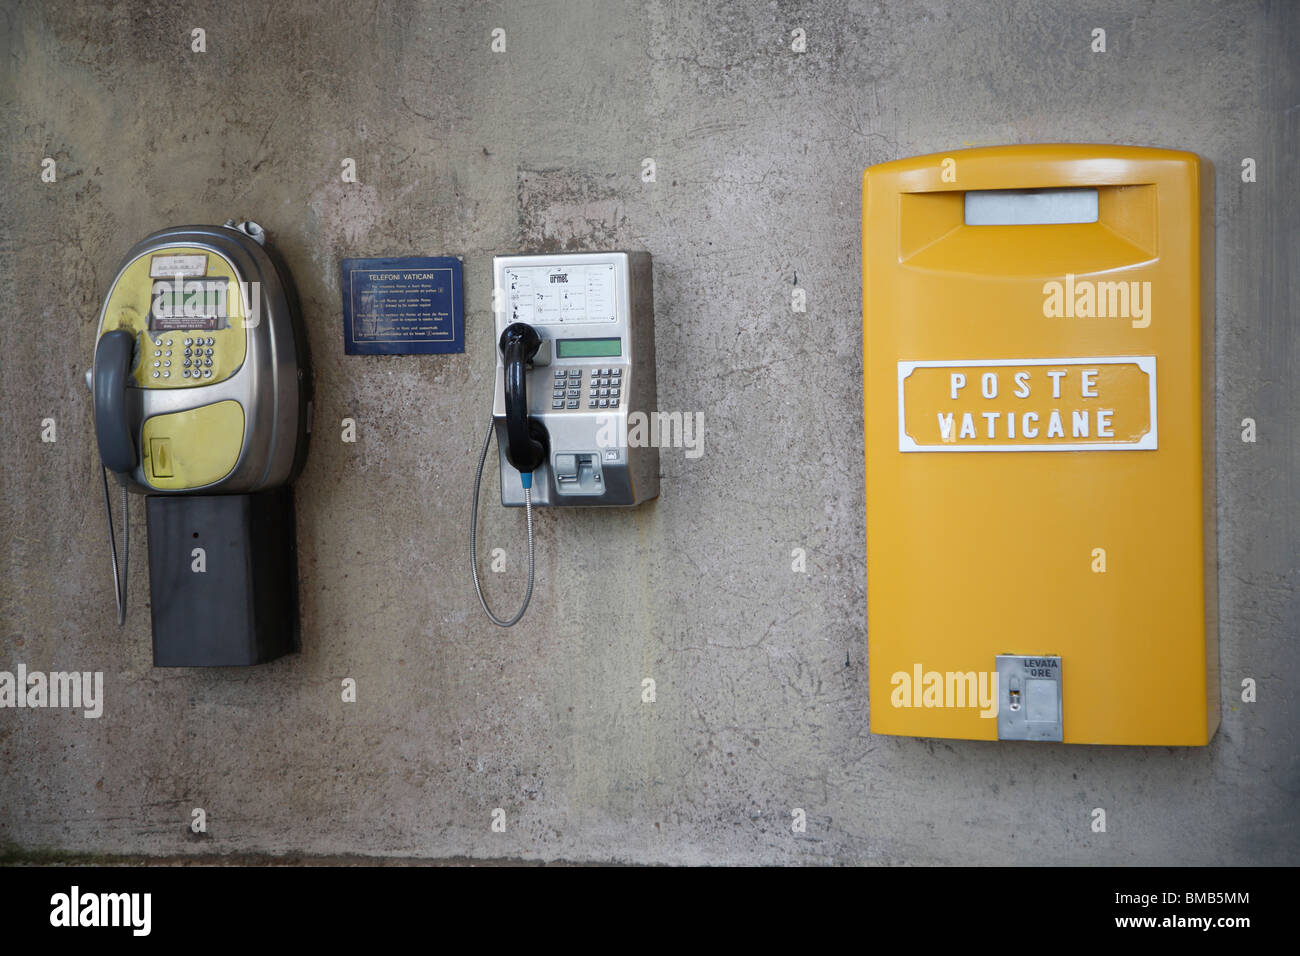 Street phones and mail box, Vatican, Rome, Italy - Stock Image